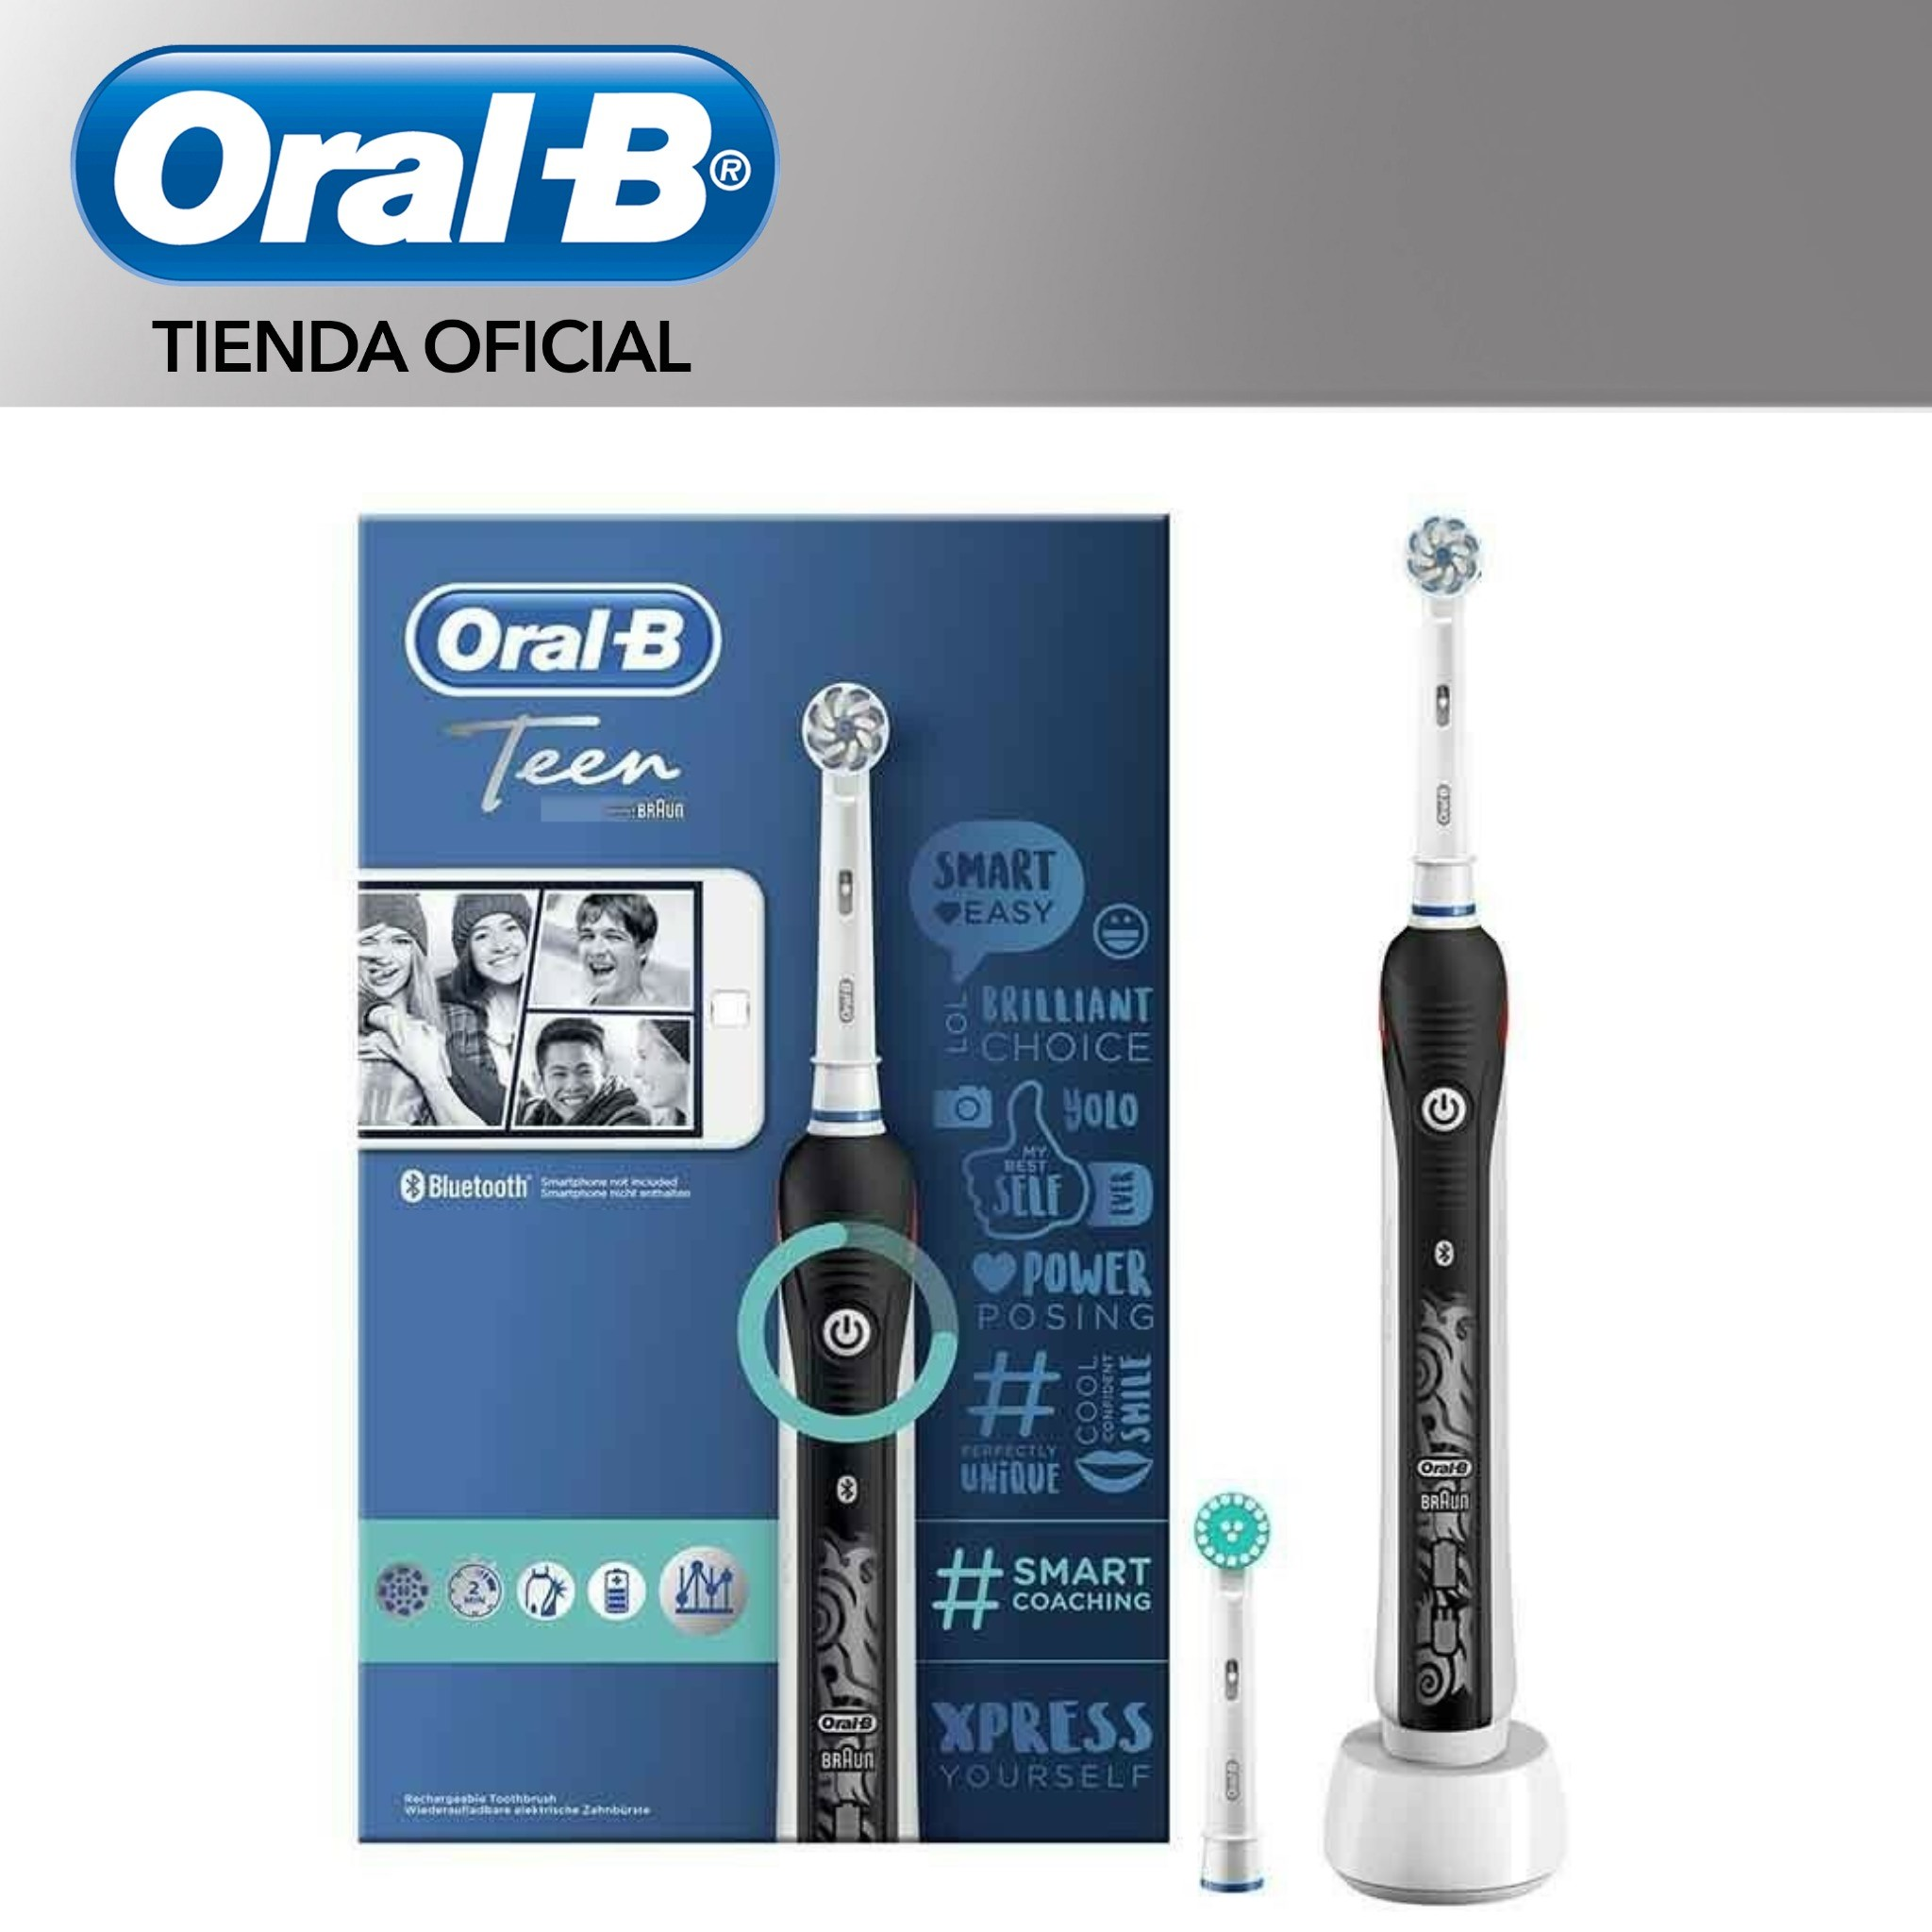 Oral B Smart Series Teen Sensi Ultrathin Toothbrush electrics-3 modes cleaners, timer 2 min, pressure sensor image